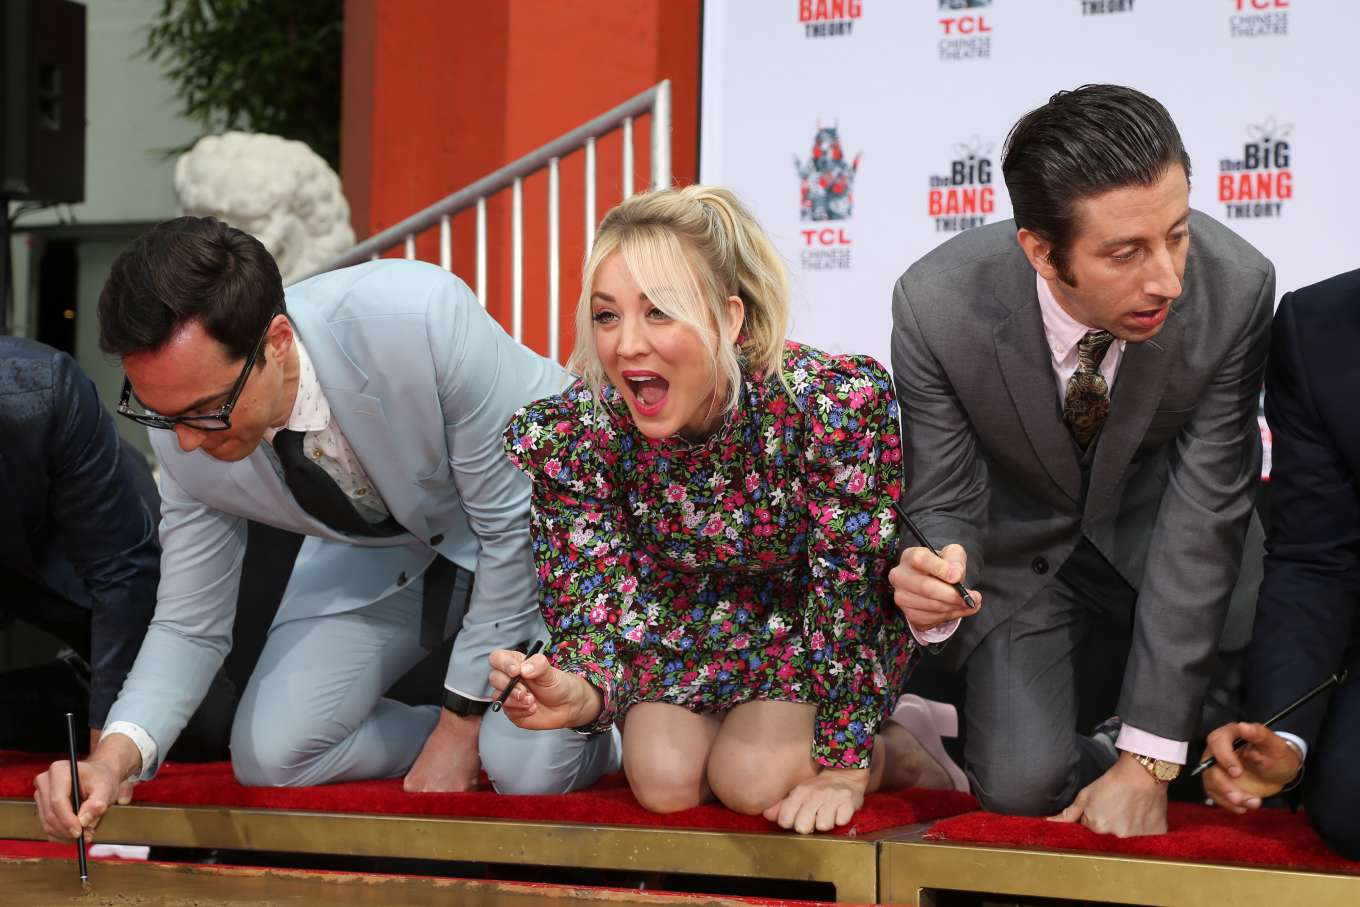 Kaley Cuoco - The Big Bang Theory handprint ceremony in Hollywood